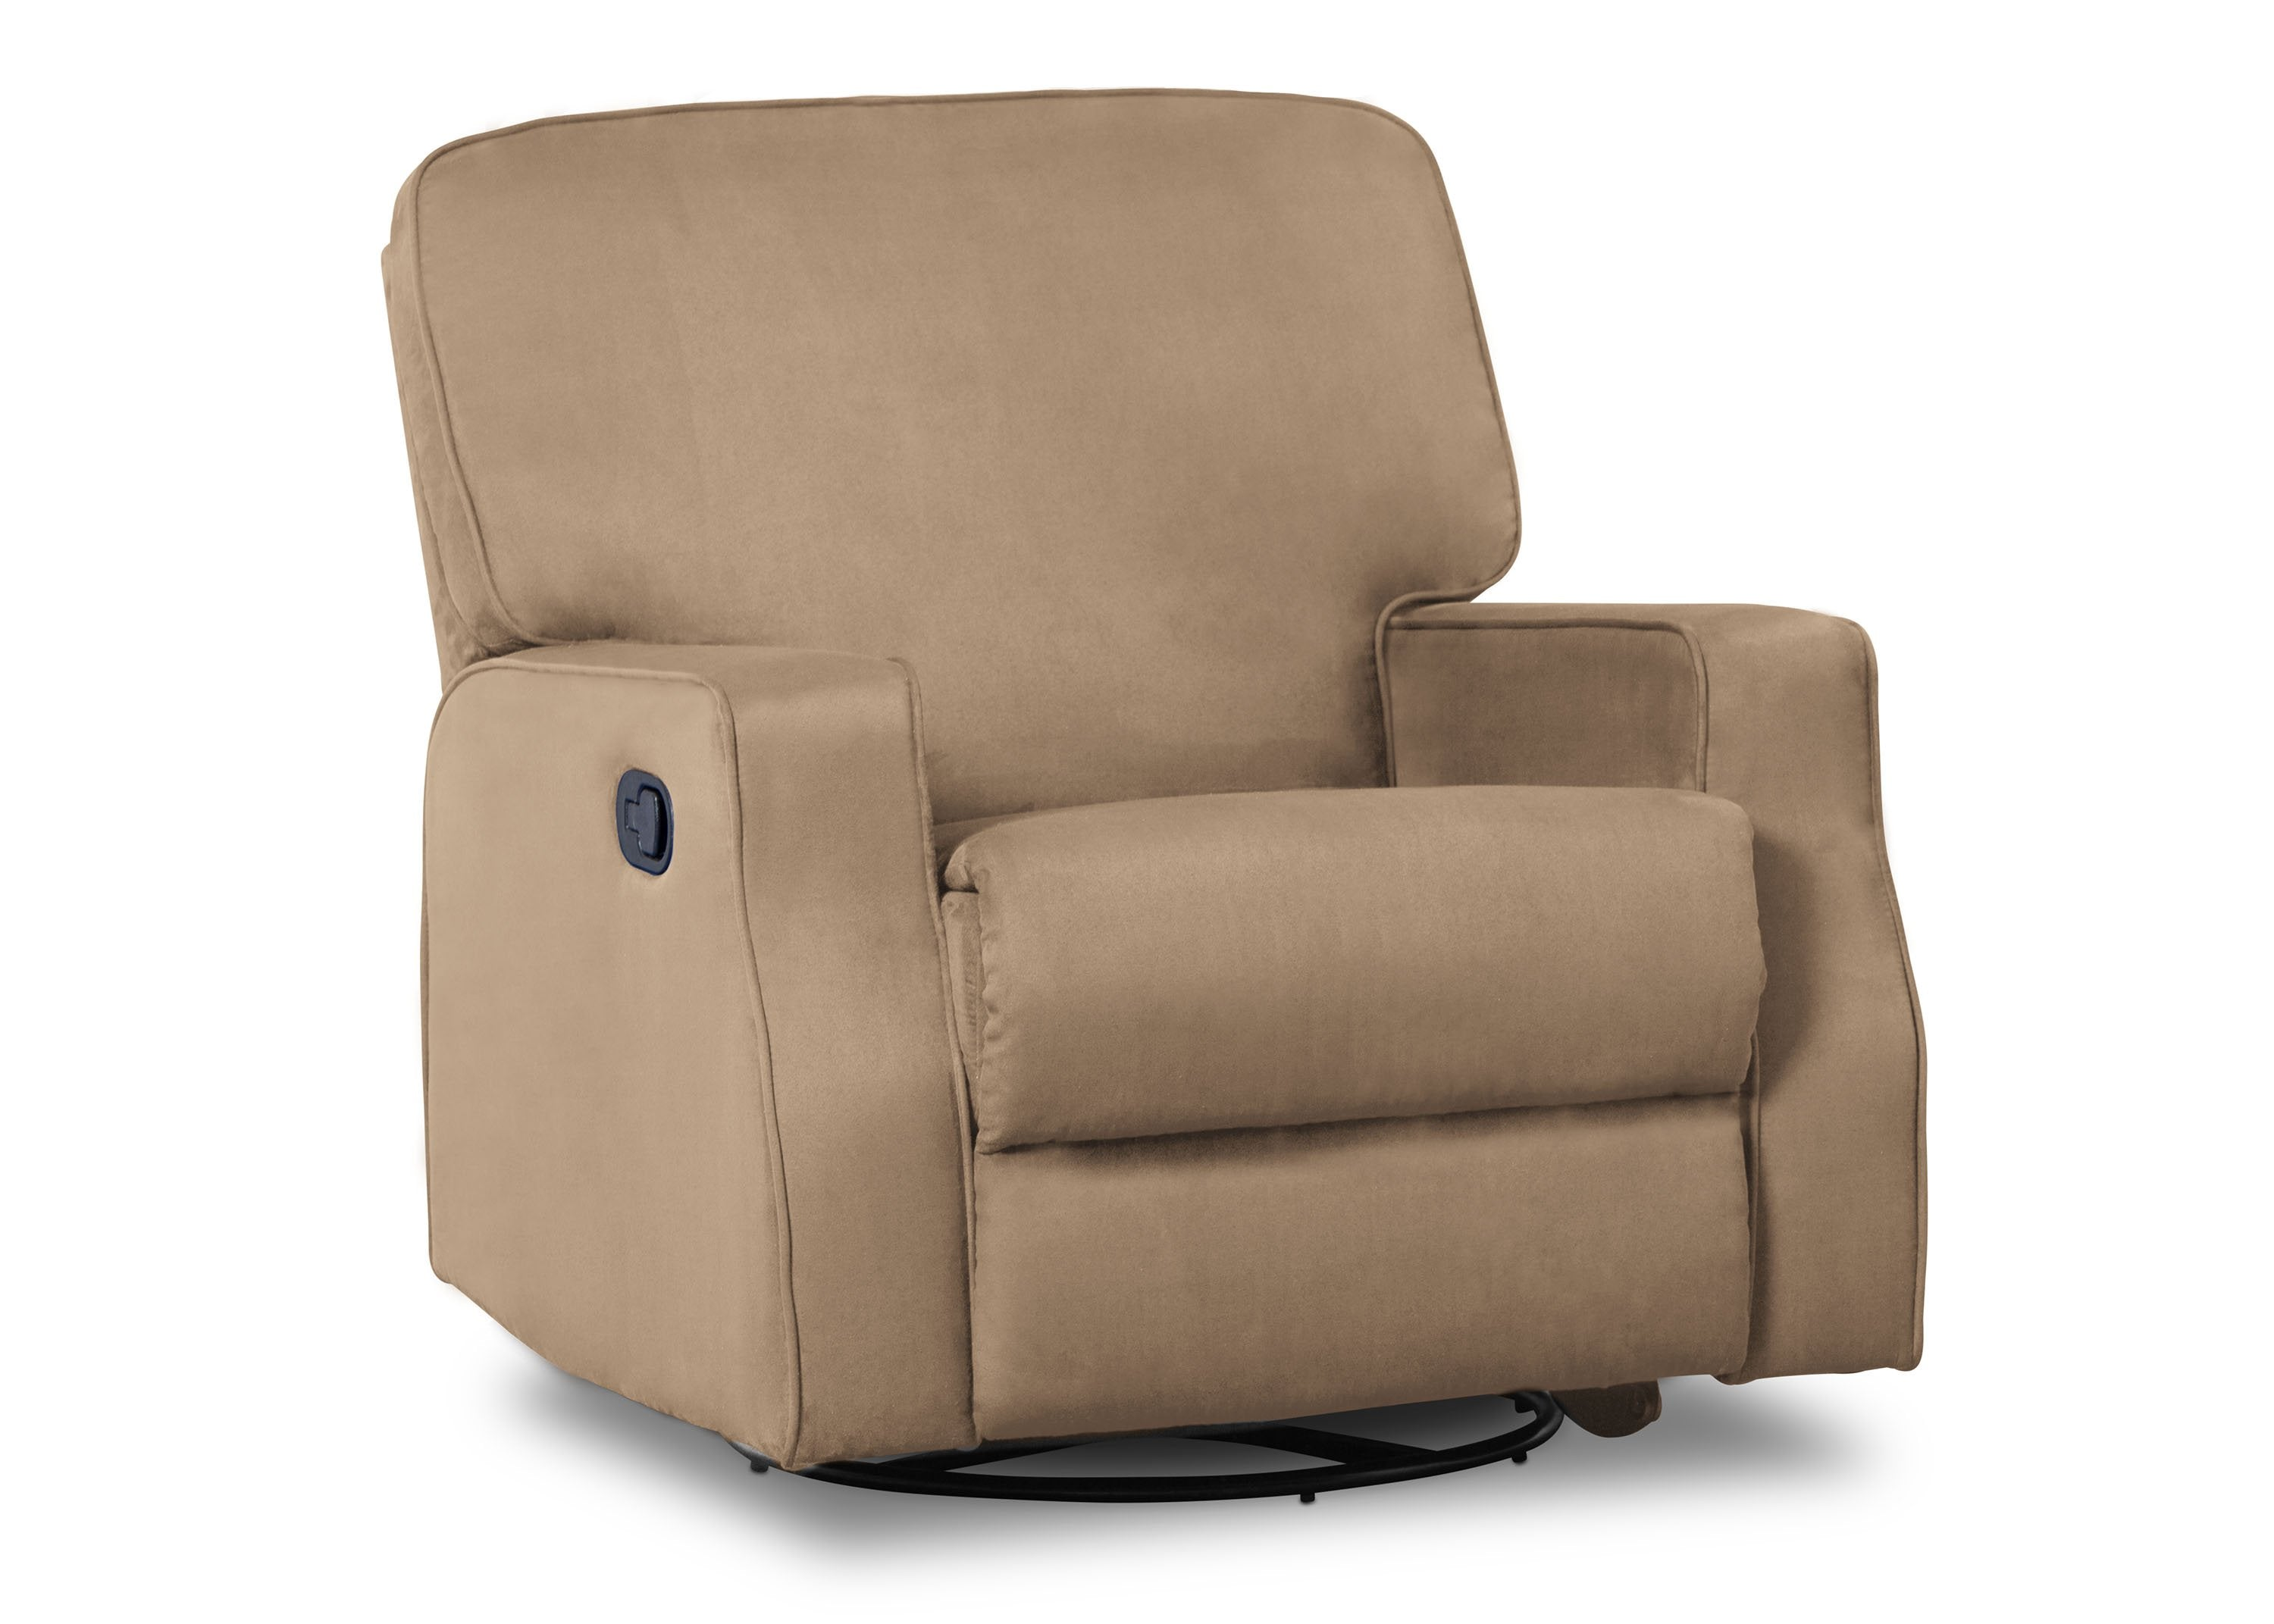 cushions with glider nursery ikea ottoman leather chair and rocking recliner